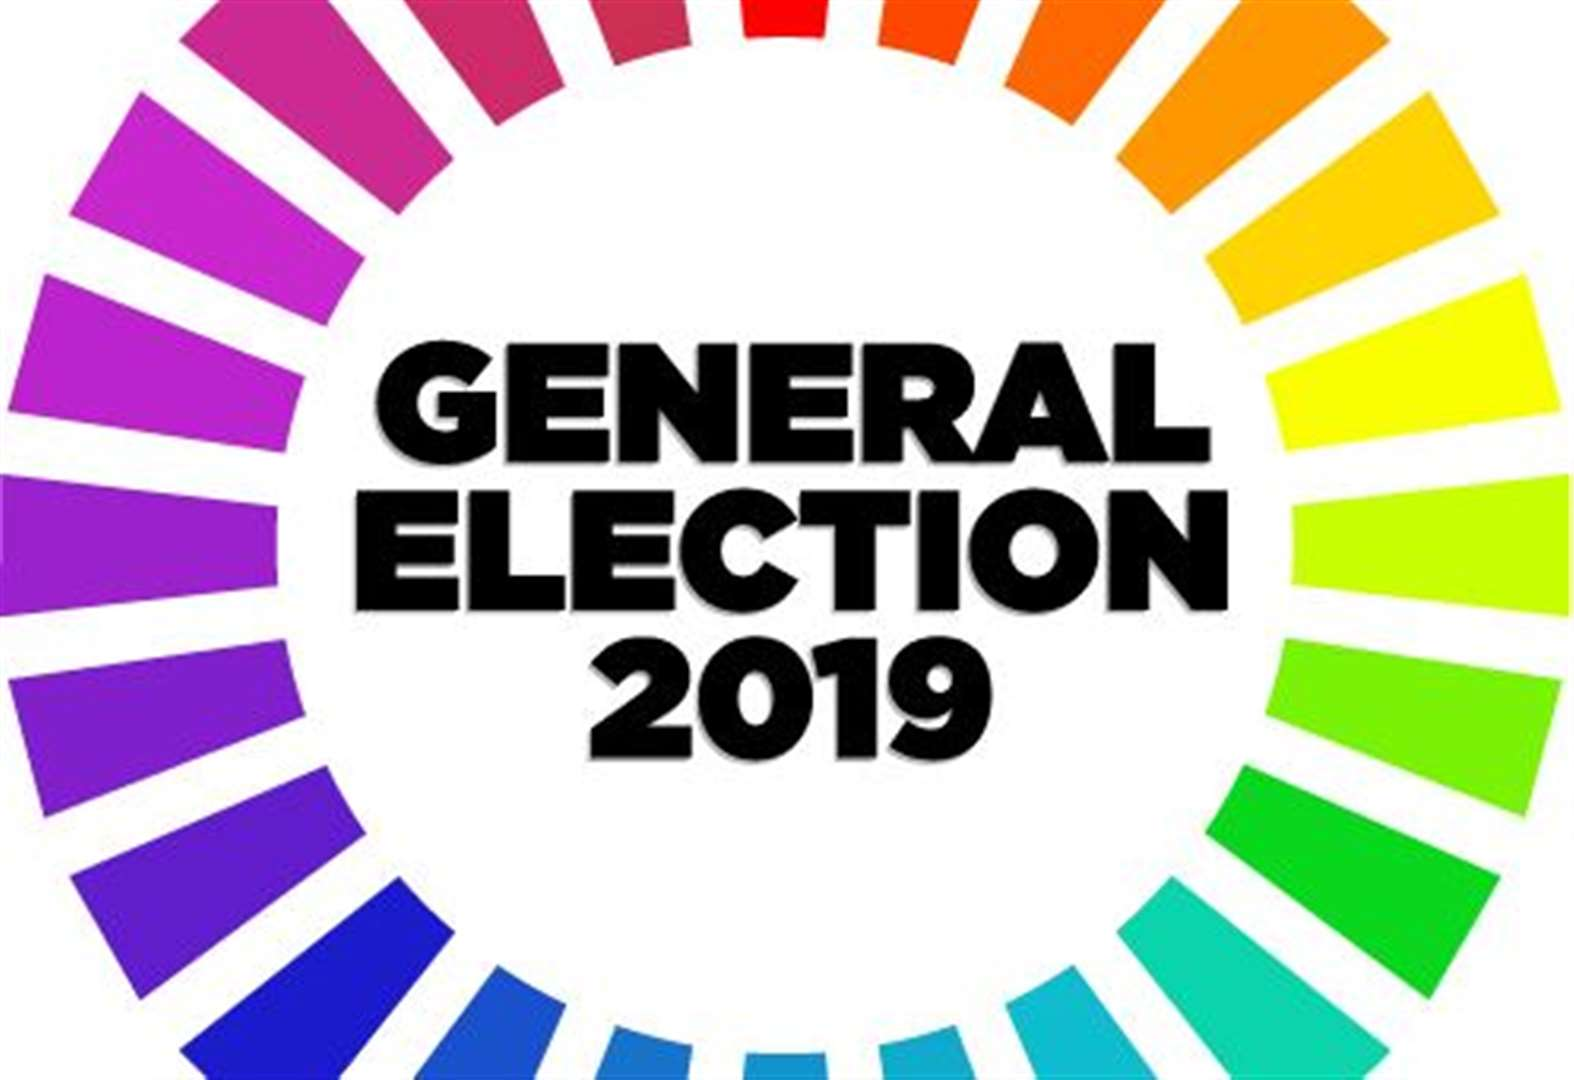 General Election 2019: Overview of campaign pledges of South Norfolk and Central Suffolk candidates